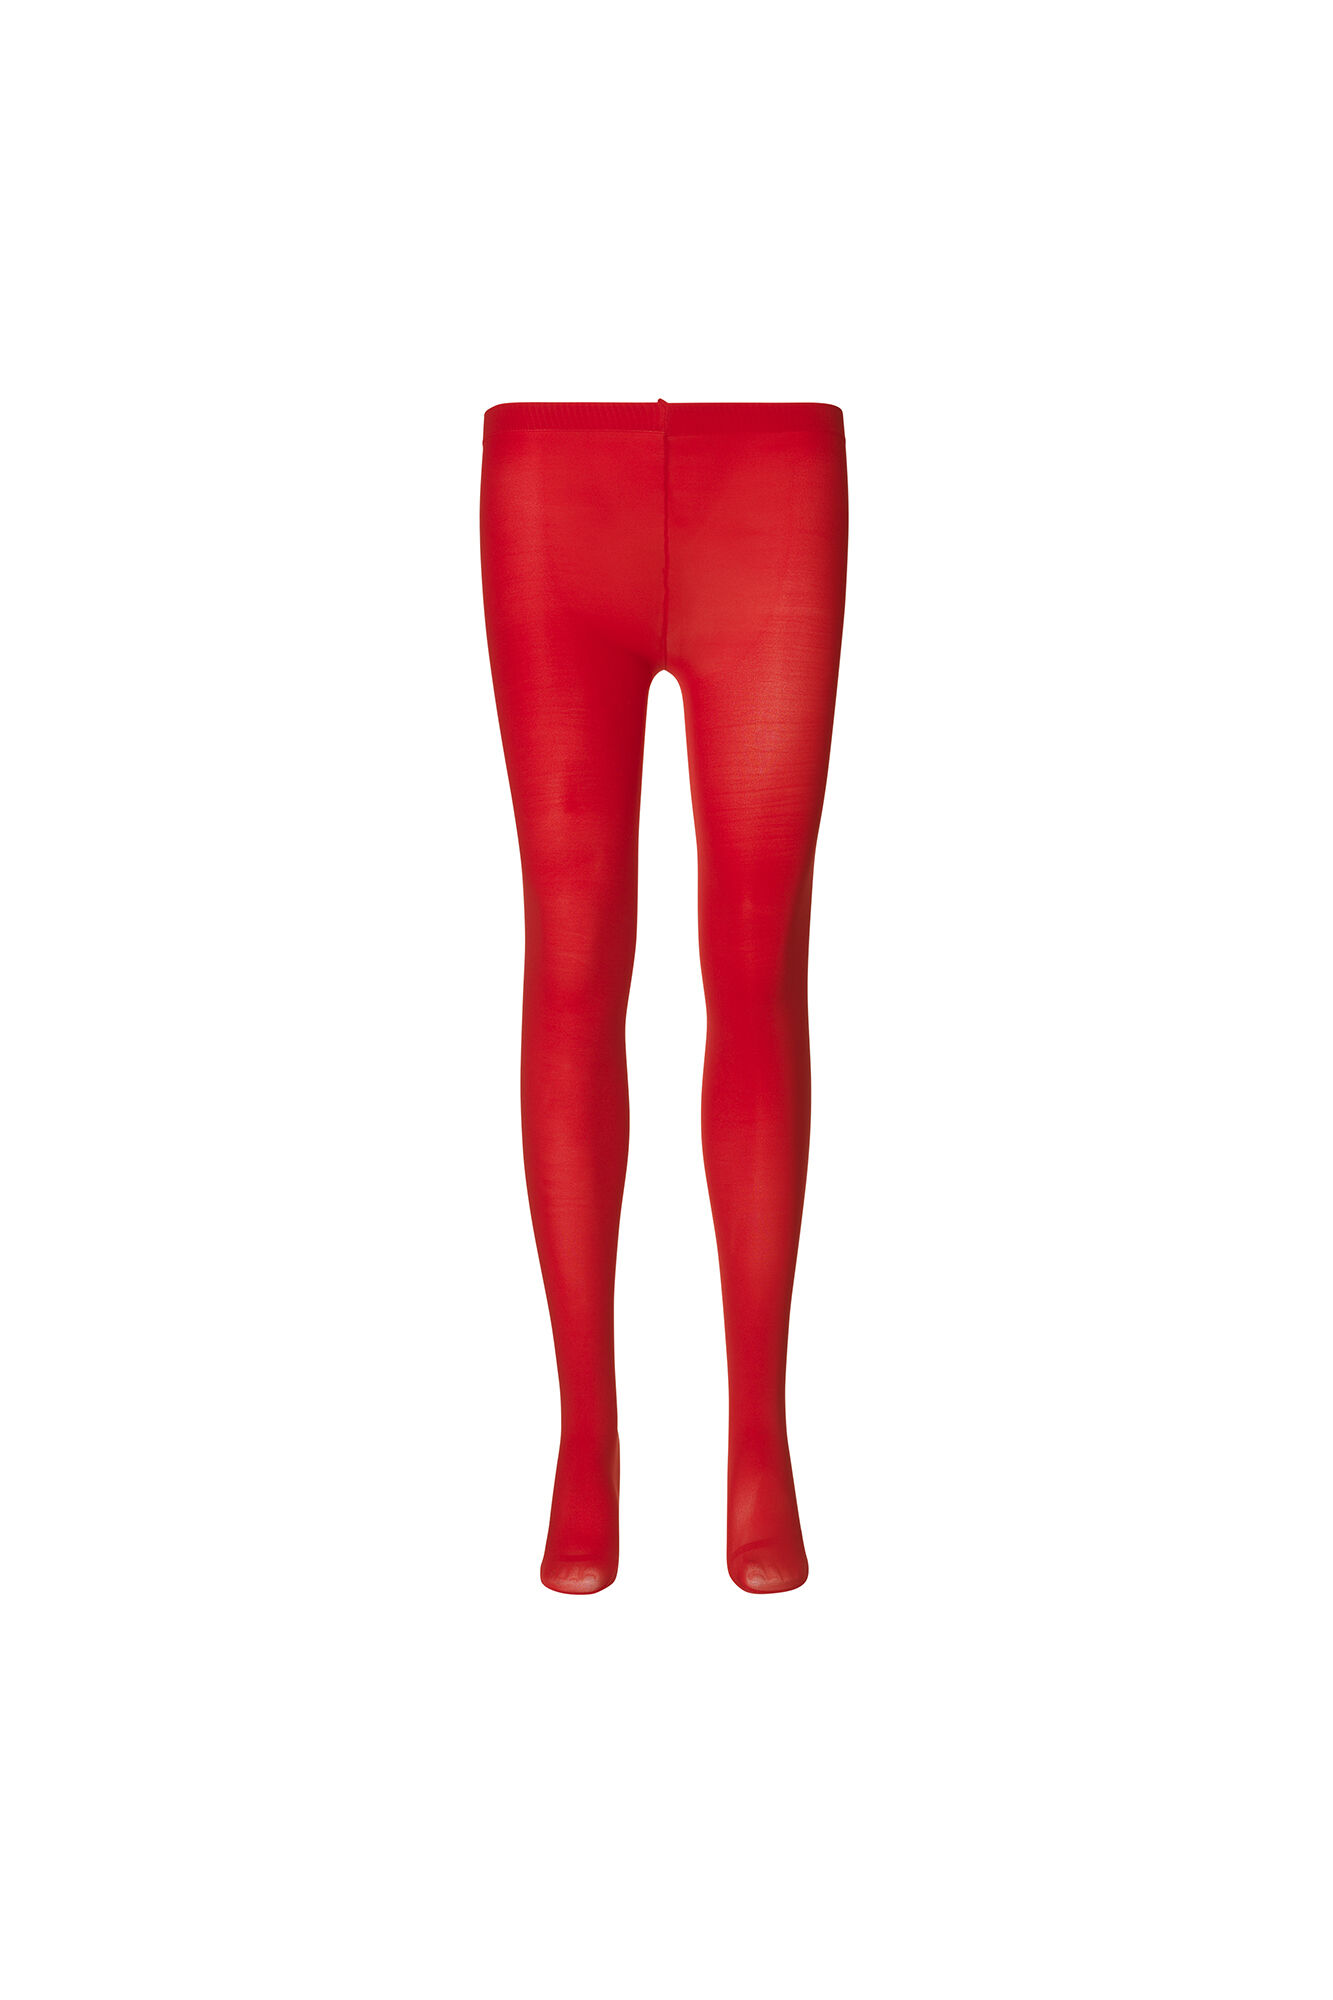 ENLILY TIGHTS 5617, FLO RED